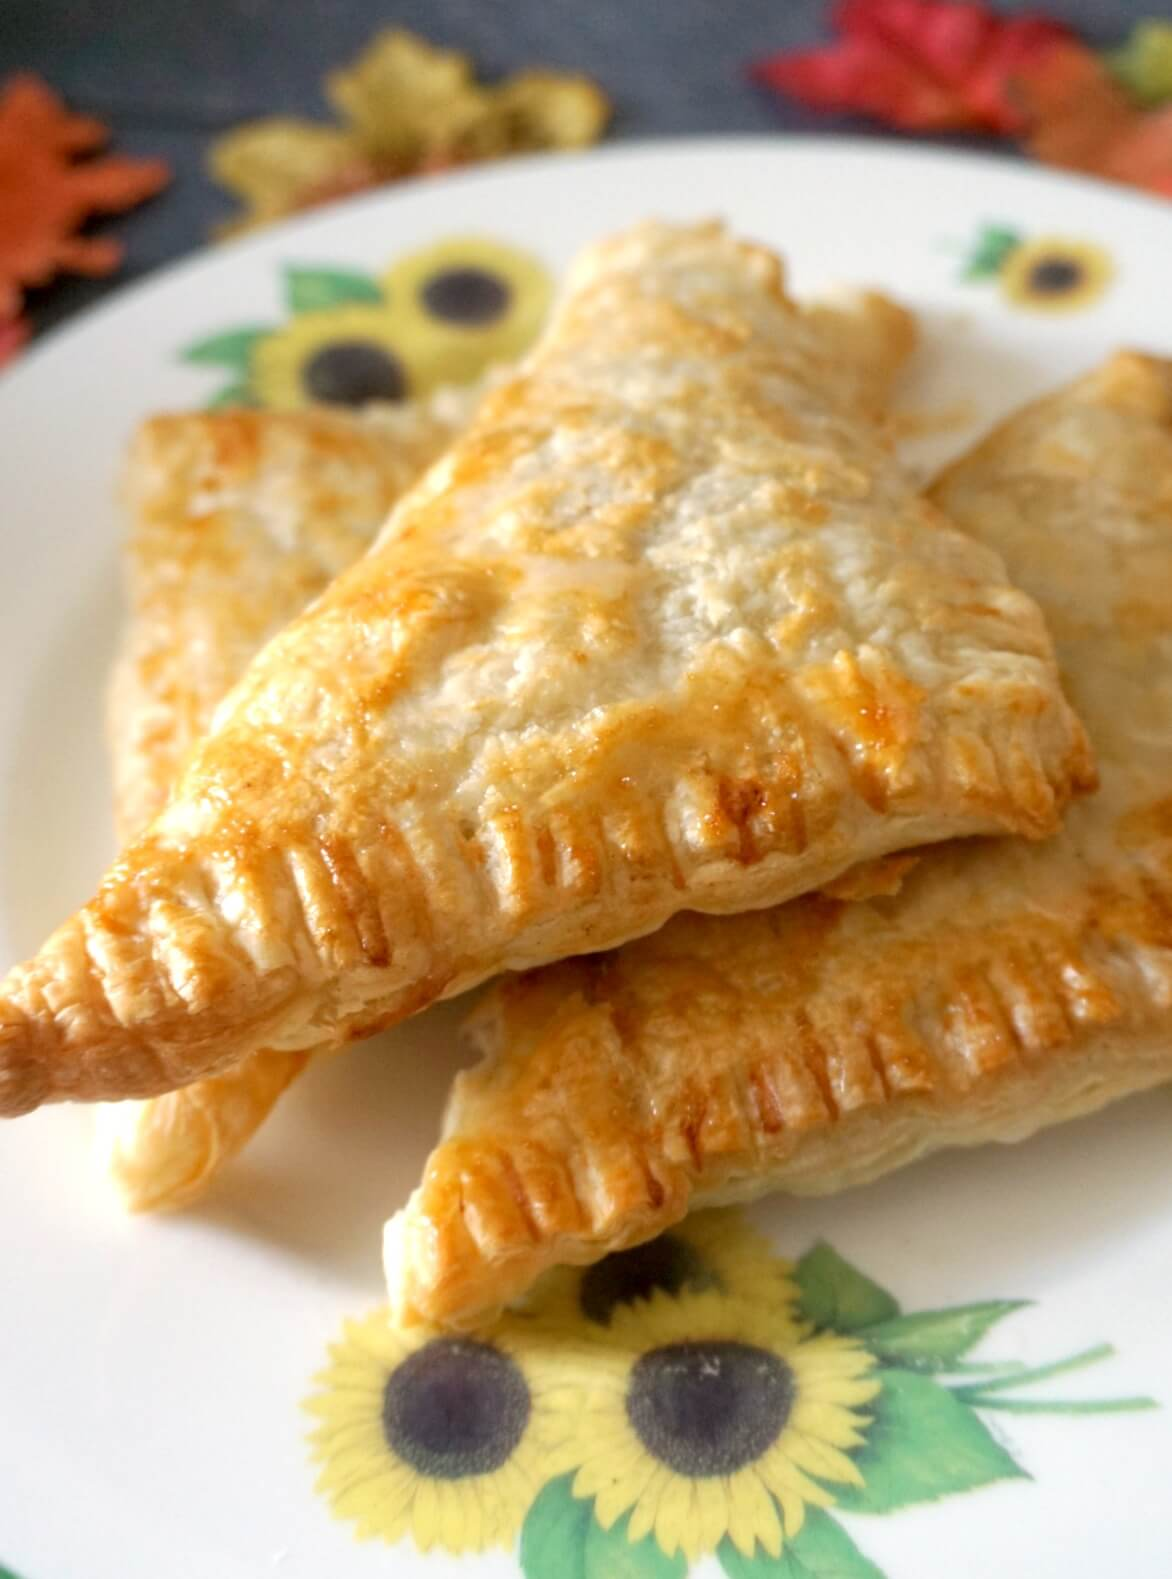 A stack of 3 apple turnovers on a large plate